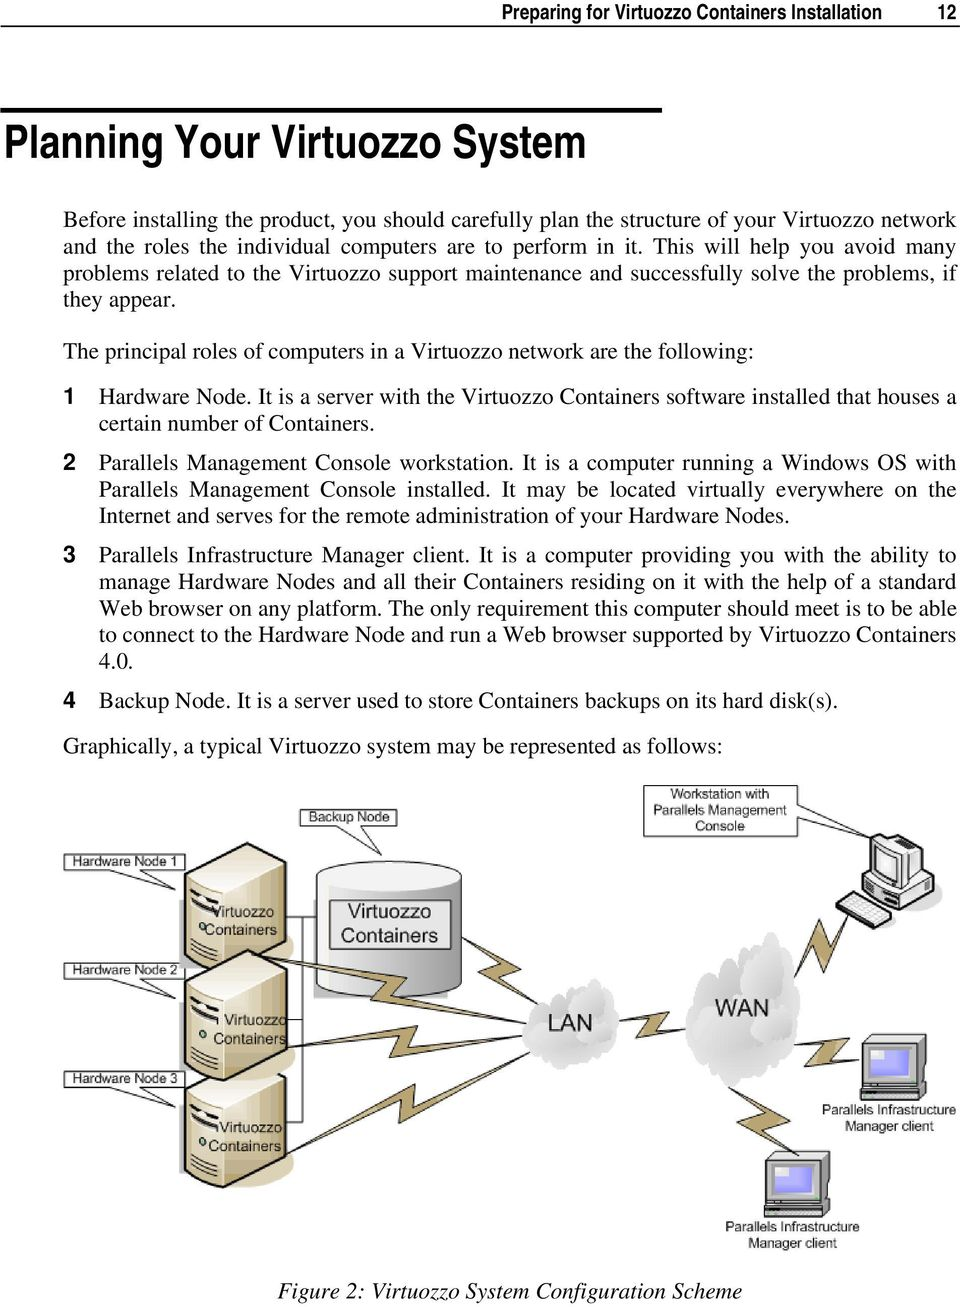 The principal roles of computers in a Virtuozzo network are the following: 1 Hardware Node. It is a server with the Virtuozzo Containers software installed that houses a certain number of Containers.